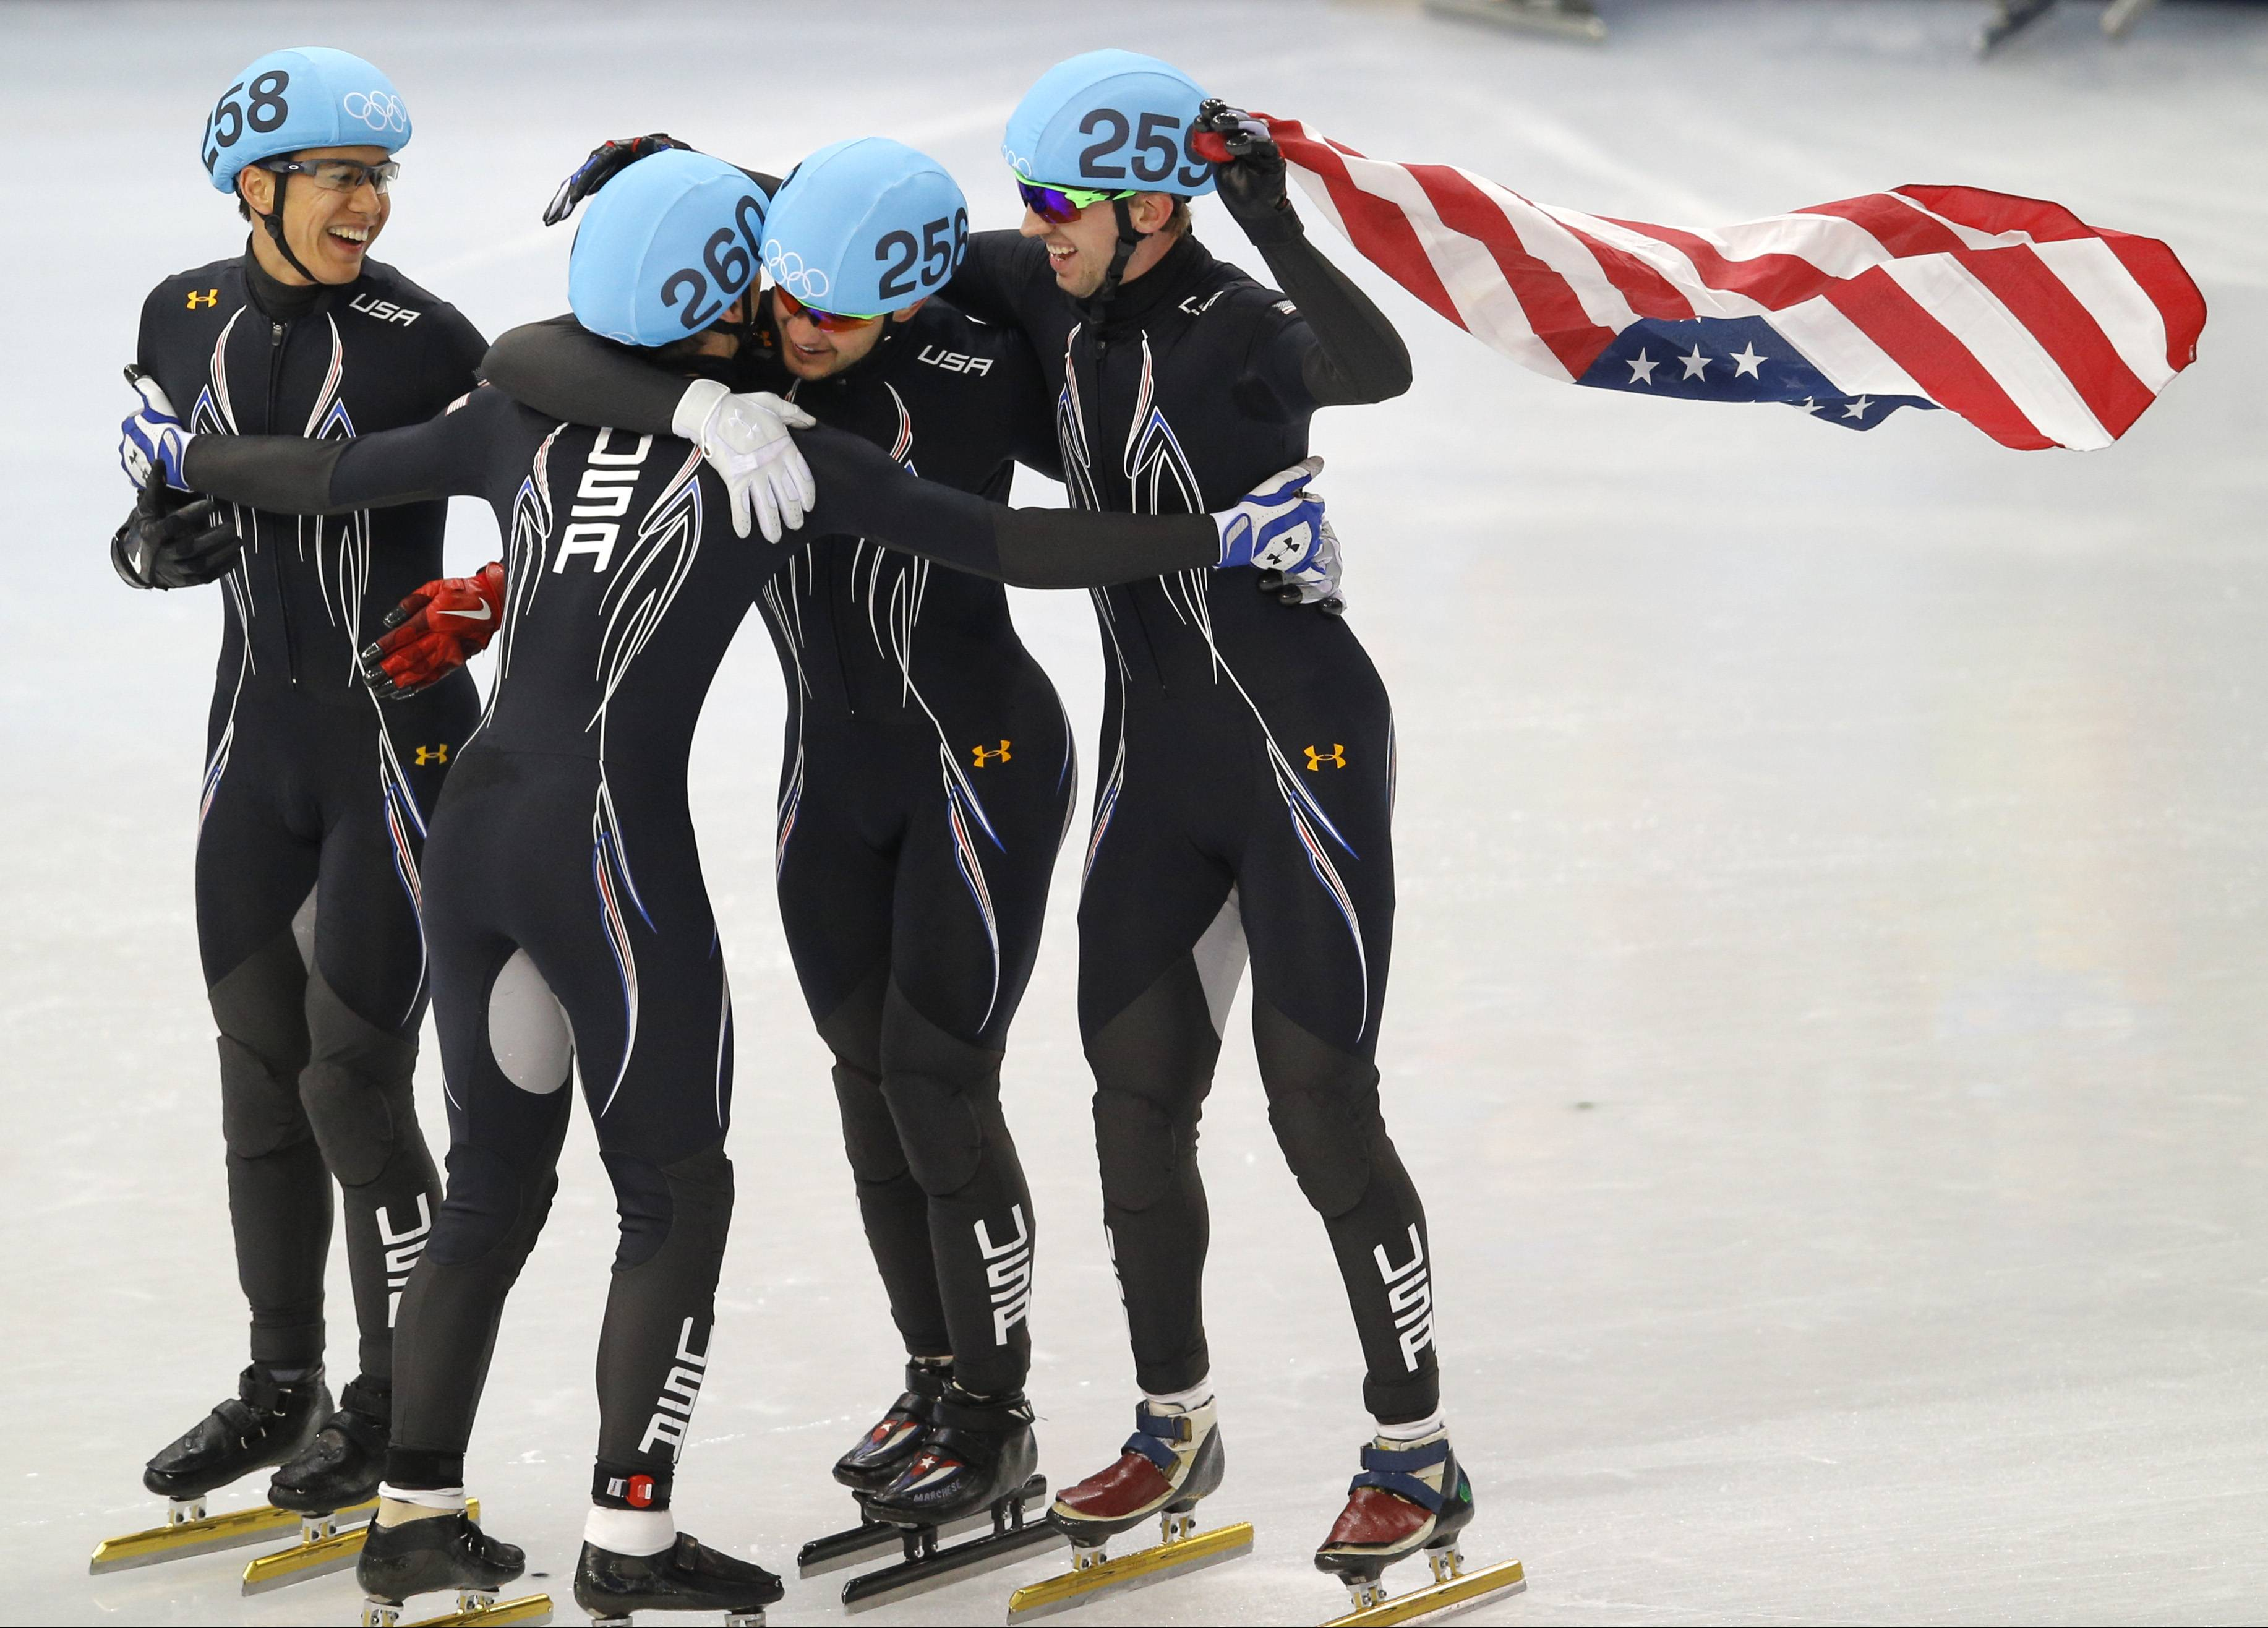 From left, J.R. Celski of the United States, Jordan Malone of the United States, Eduardo Alvarez of the United States and Chris Creveling of the United States celebrate their second place finish in the men's 5000m short track speedskating relay final.